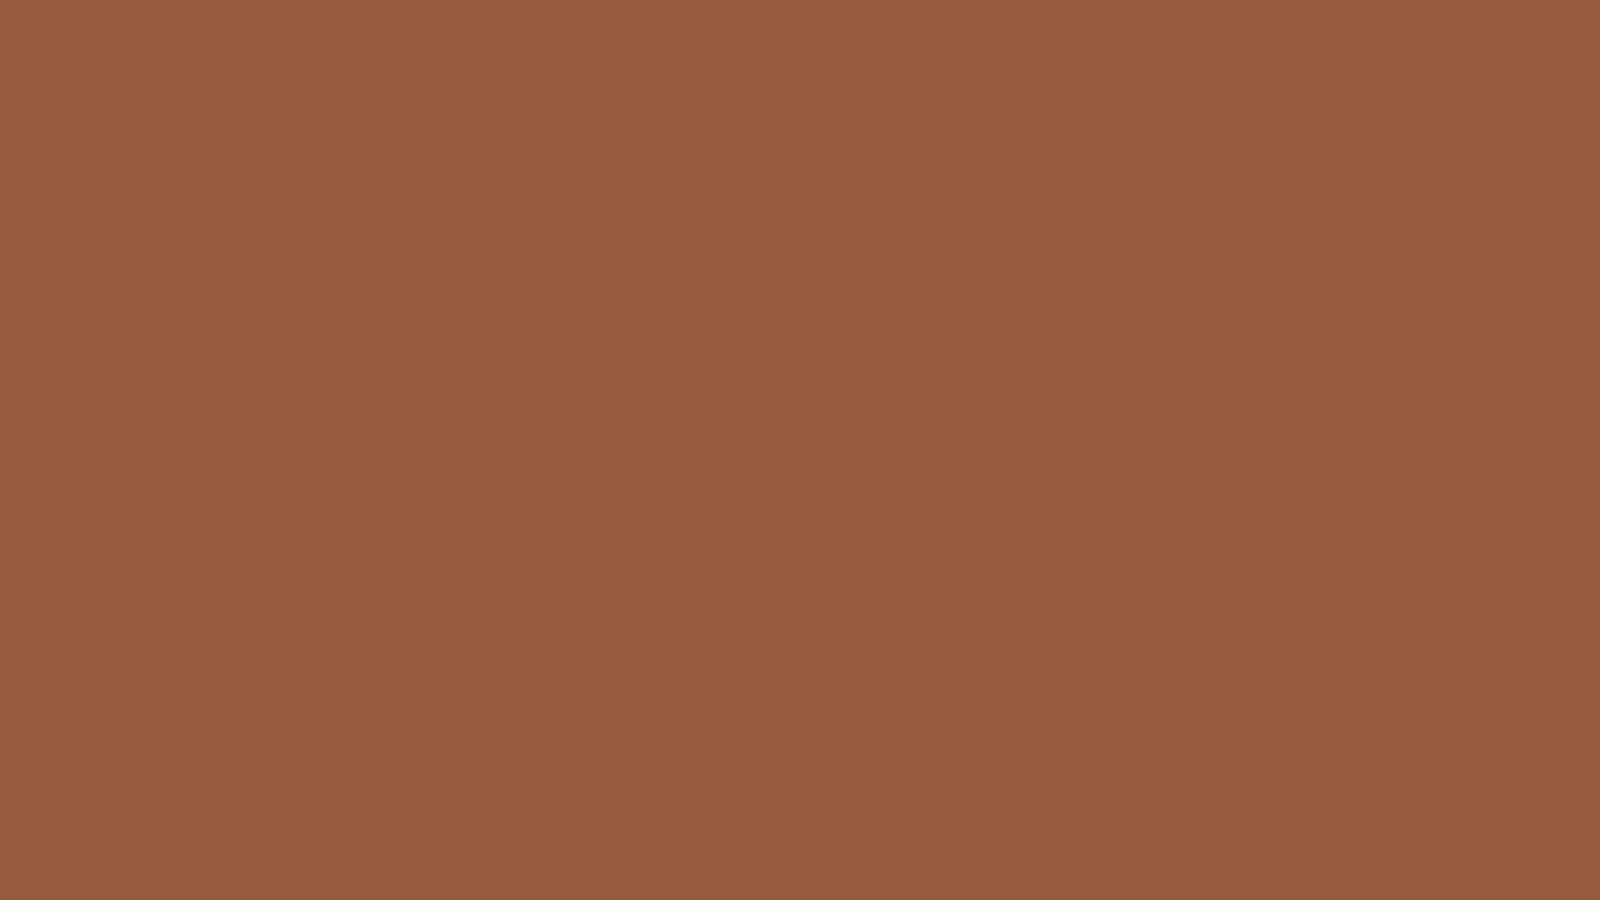 1600x900 Coconut Solid Color Background